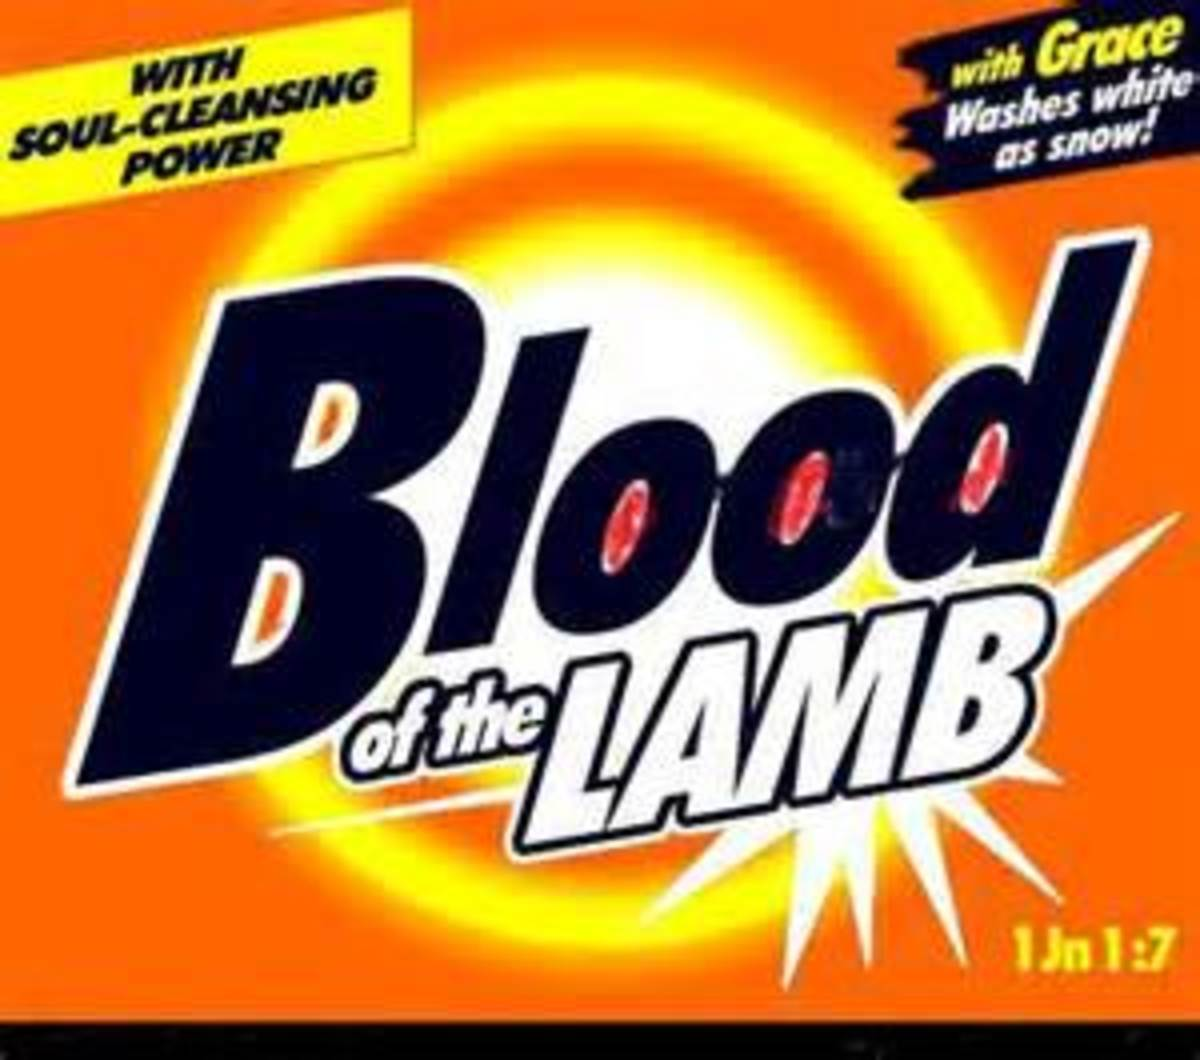 The cleansing agent is the blood of the Lamb.